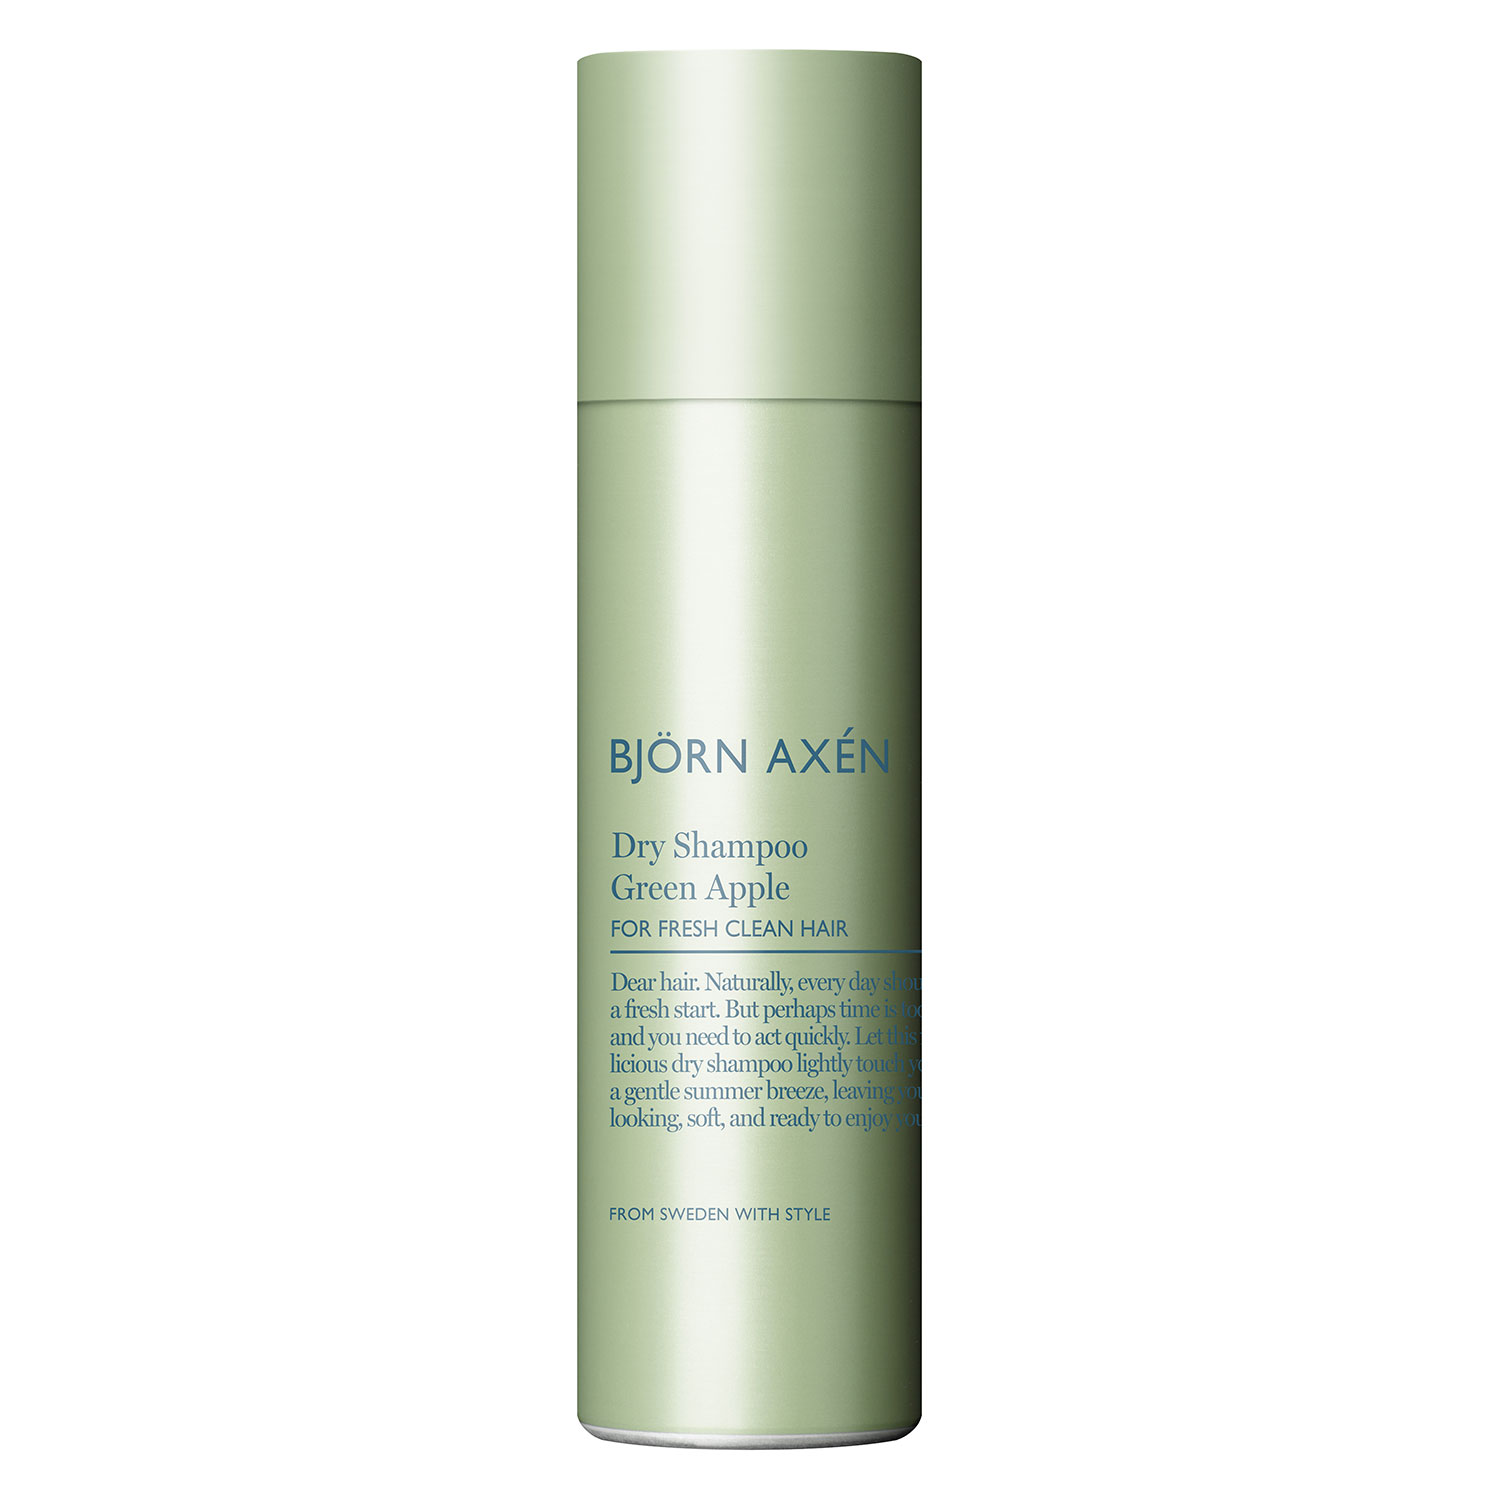 Björn Axén - Dry Shampoo Green Apple